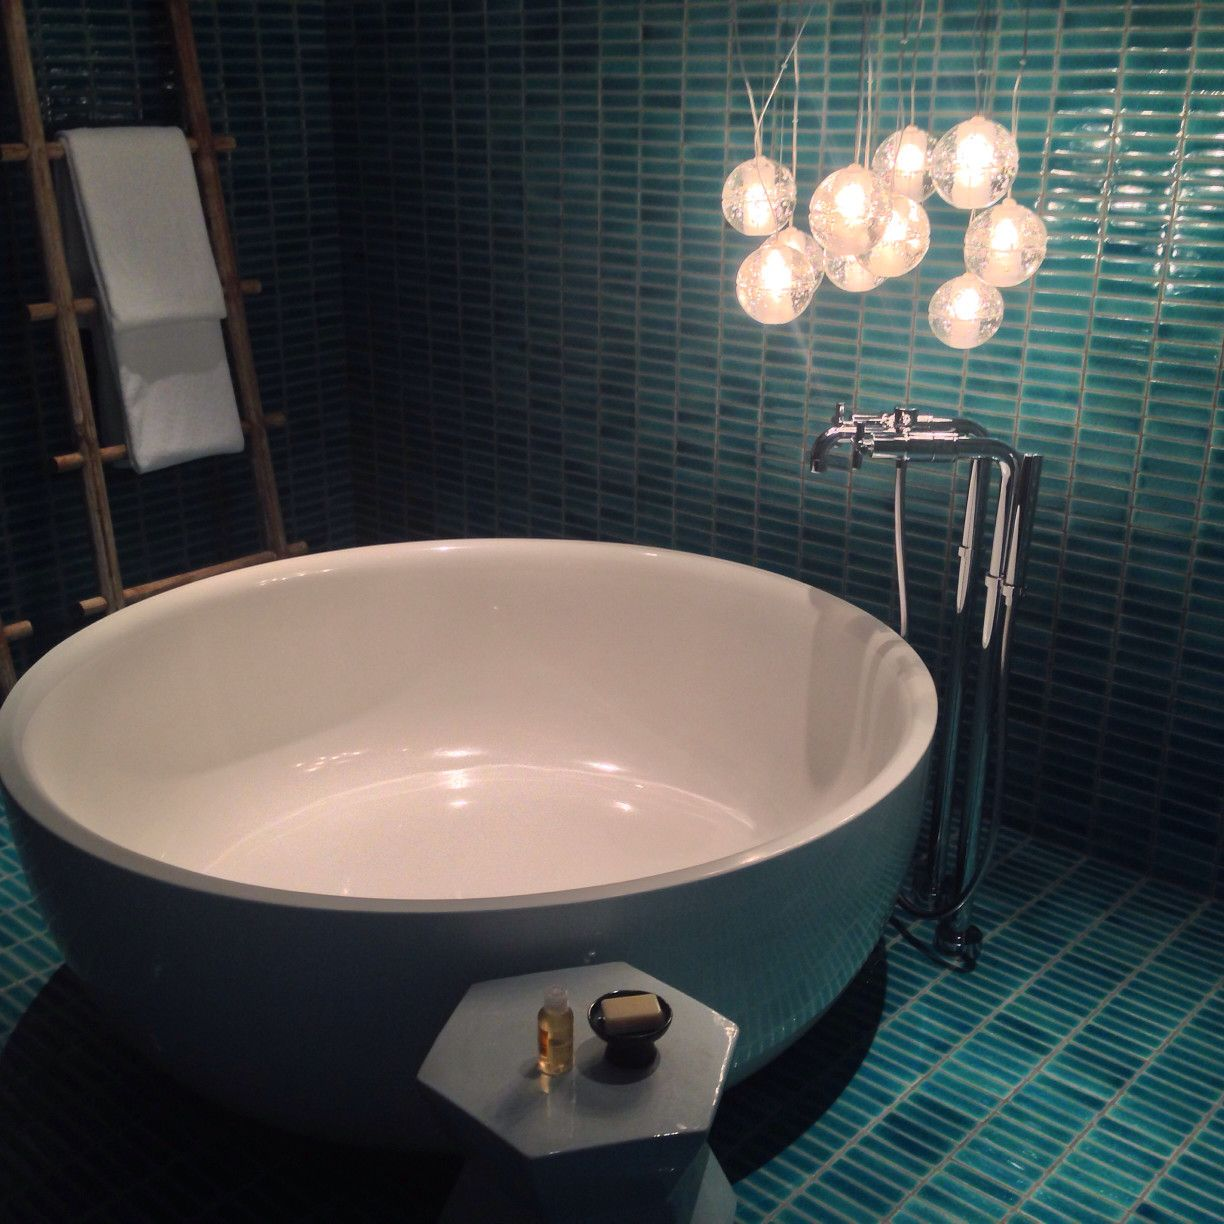 Beautiful Bathrooms With Bidet: Beautiful Bathrooms With Dramatic Tile